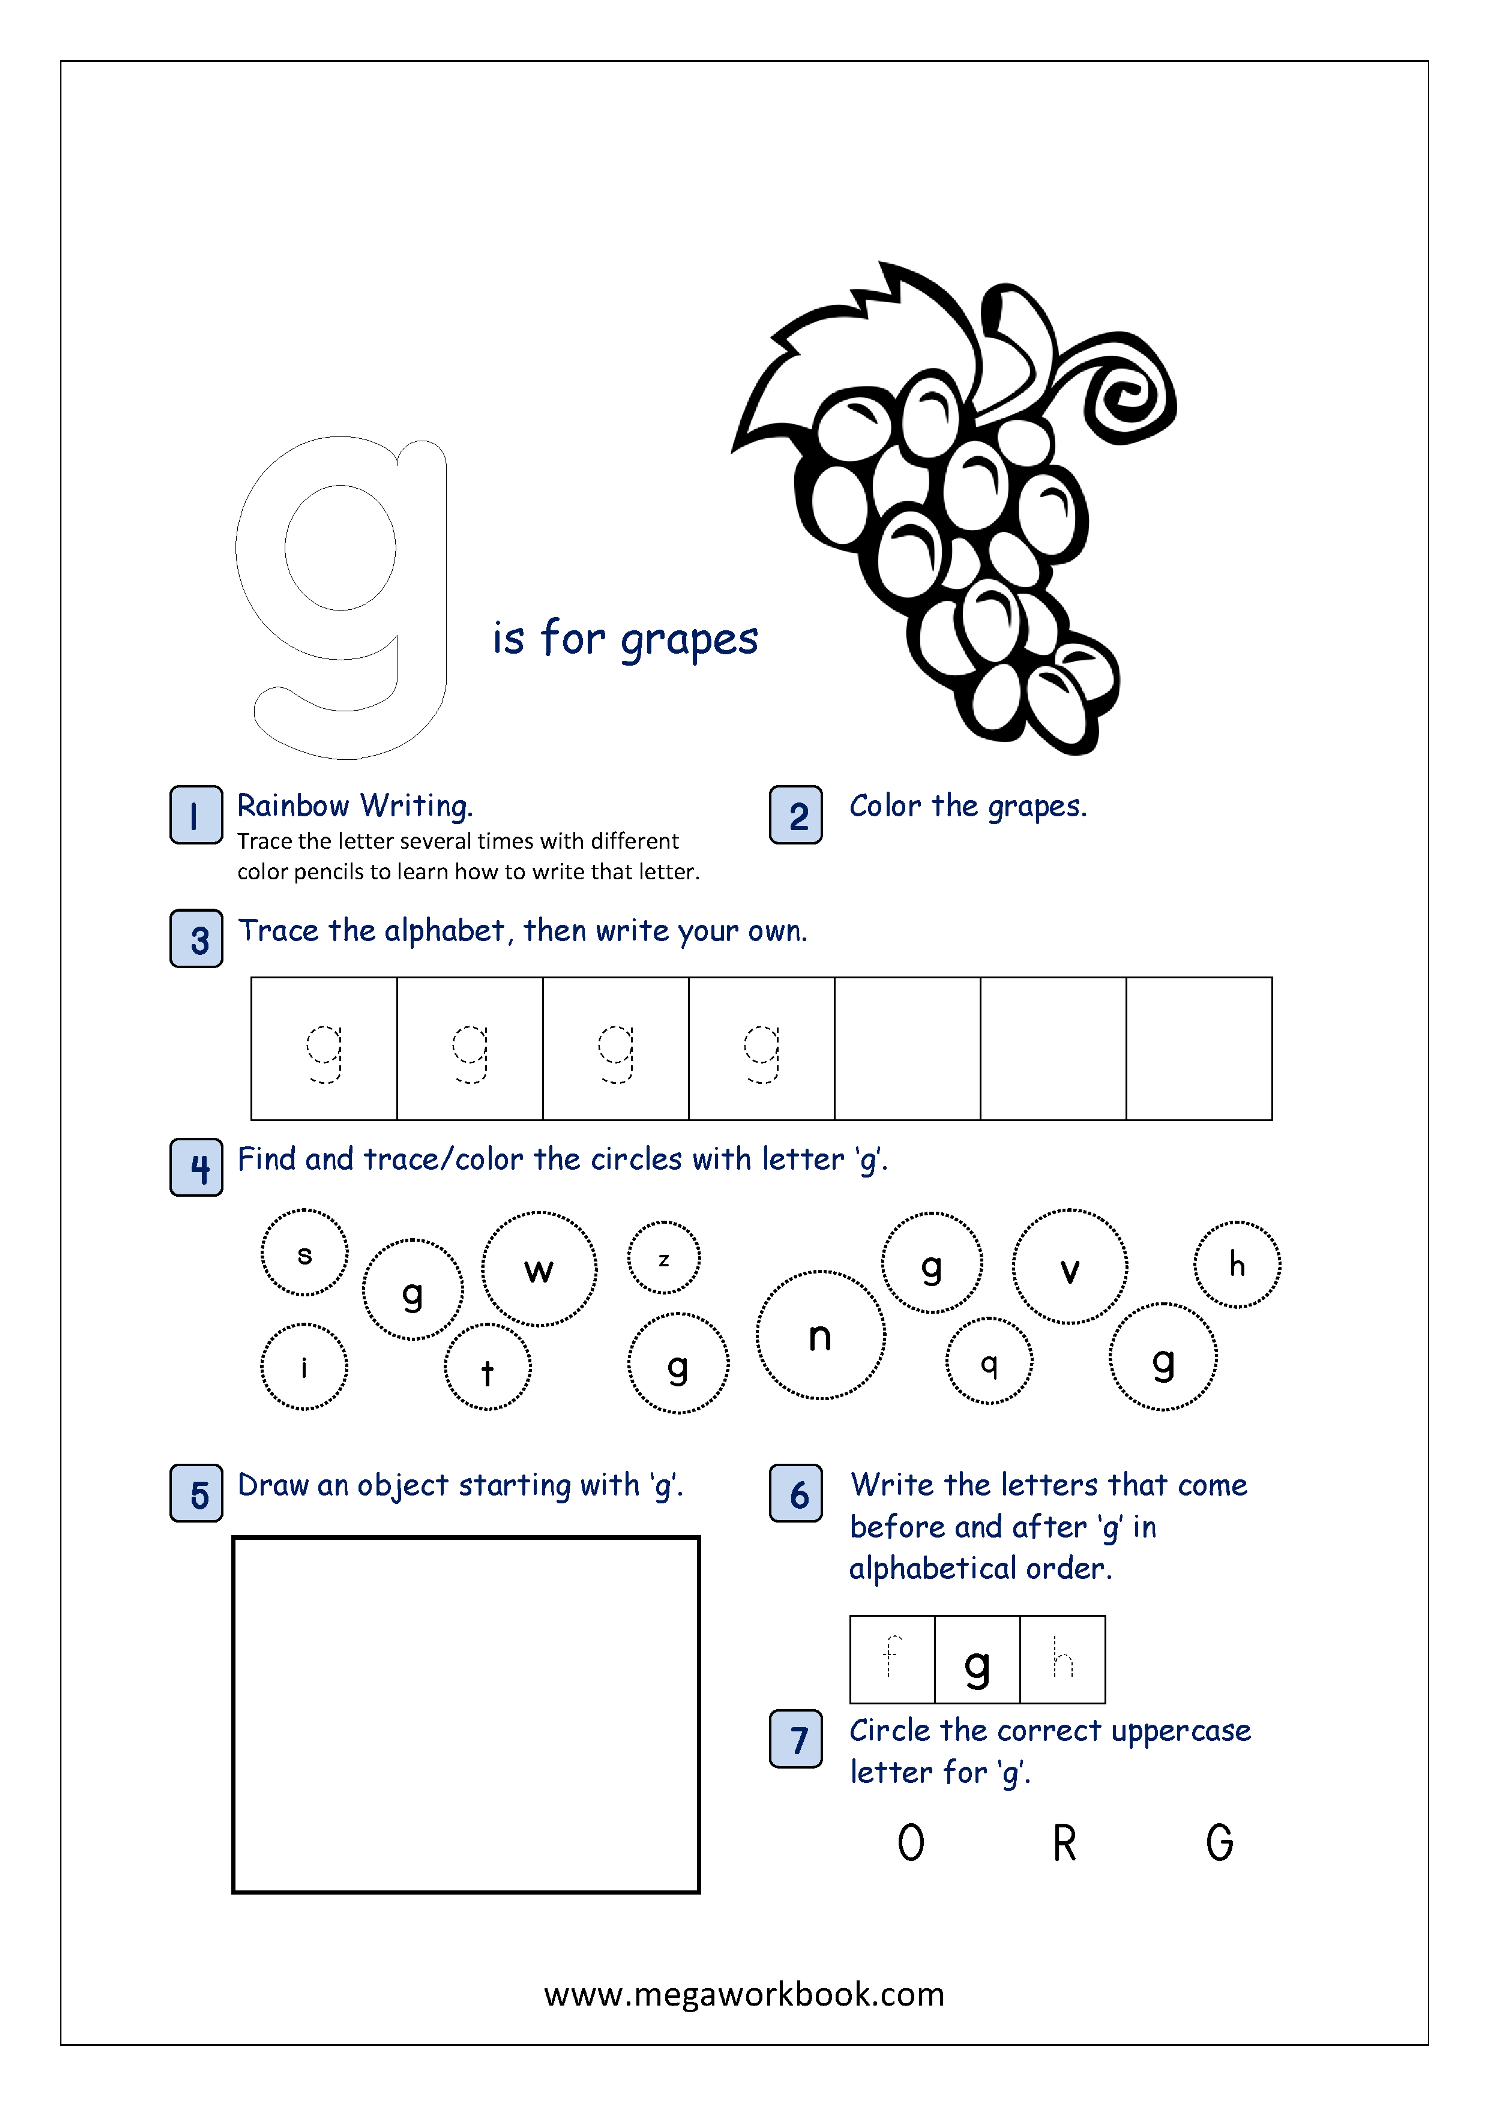 Lowercase Alphabet Recognition Activity Worksheet - Small for Tracing Small Letter G Worksheet